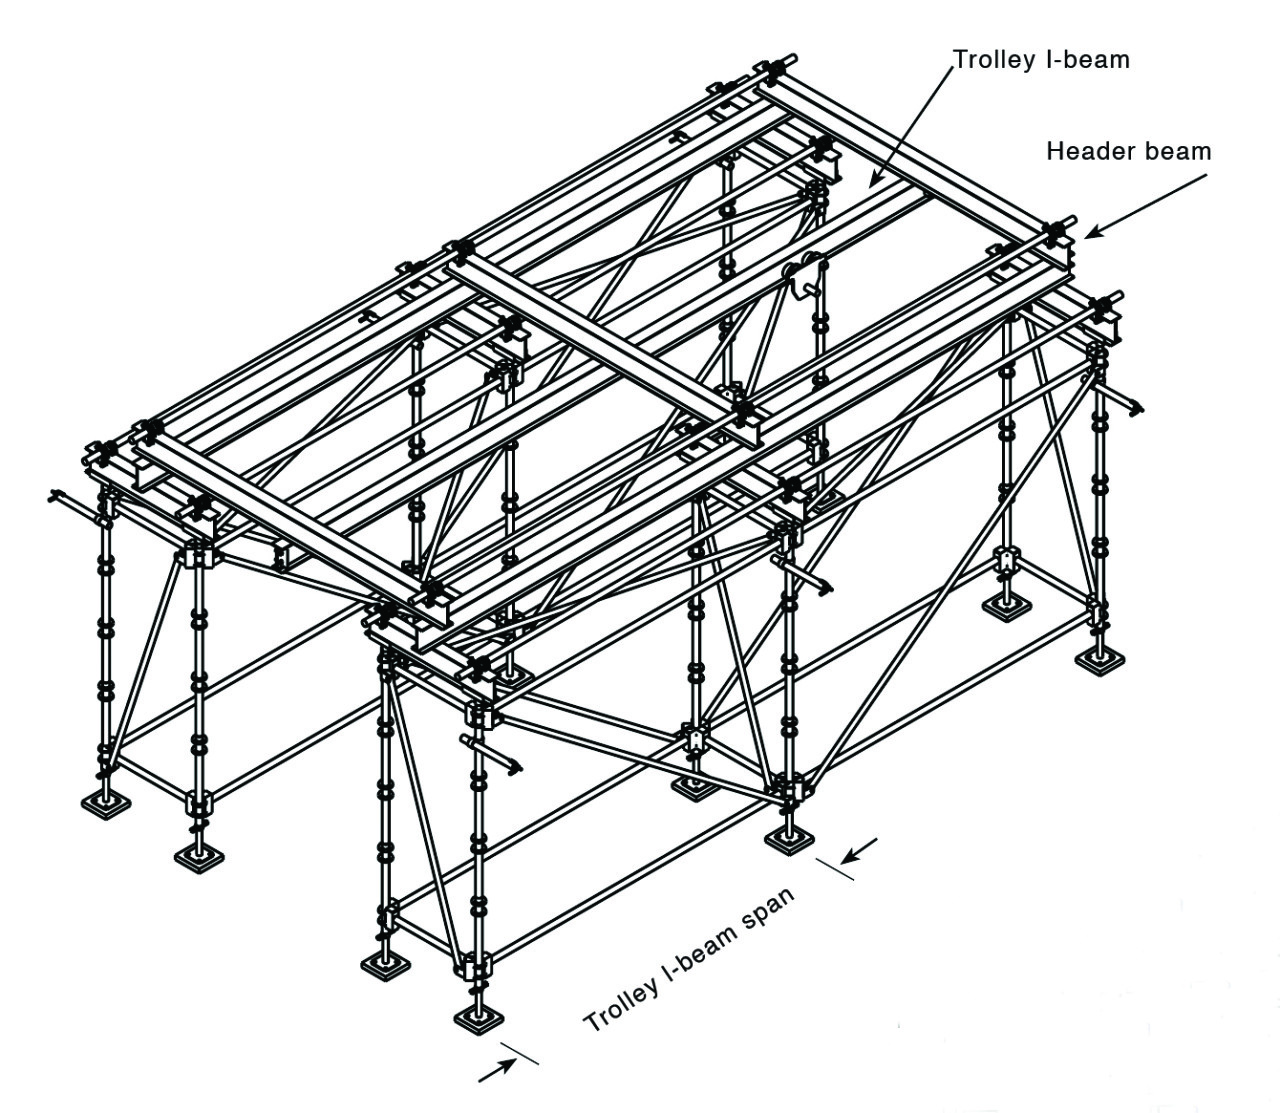 5.Underhung trolleys. Systems Scaffold can be used for rigging, but load ratings—based on I-beam and beam trolley capacities—must not be exceeded. Courtesy: Safway Group